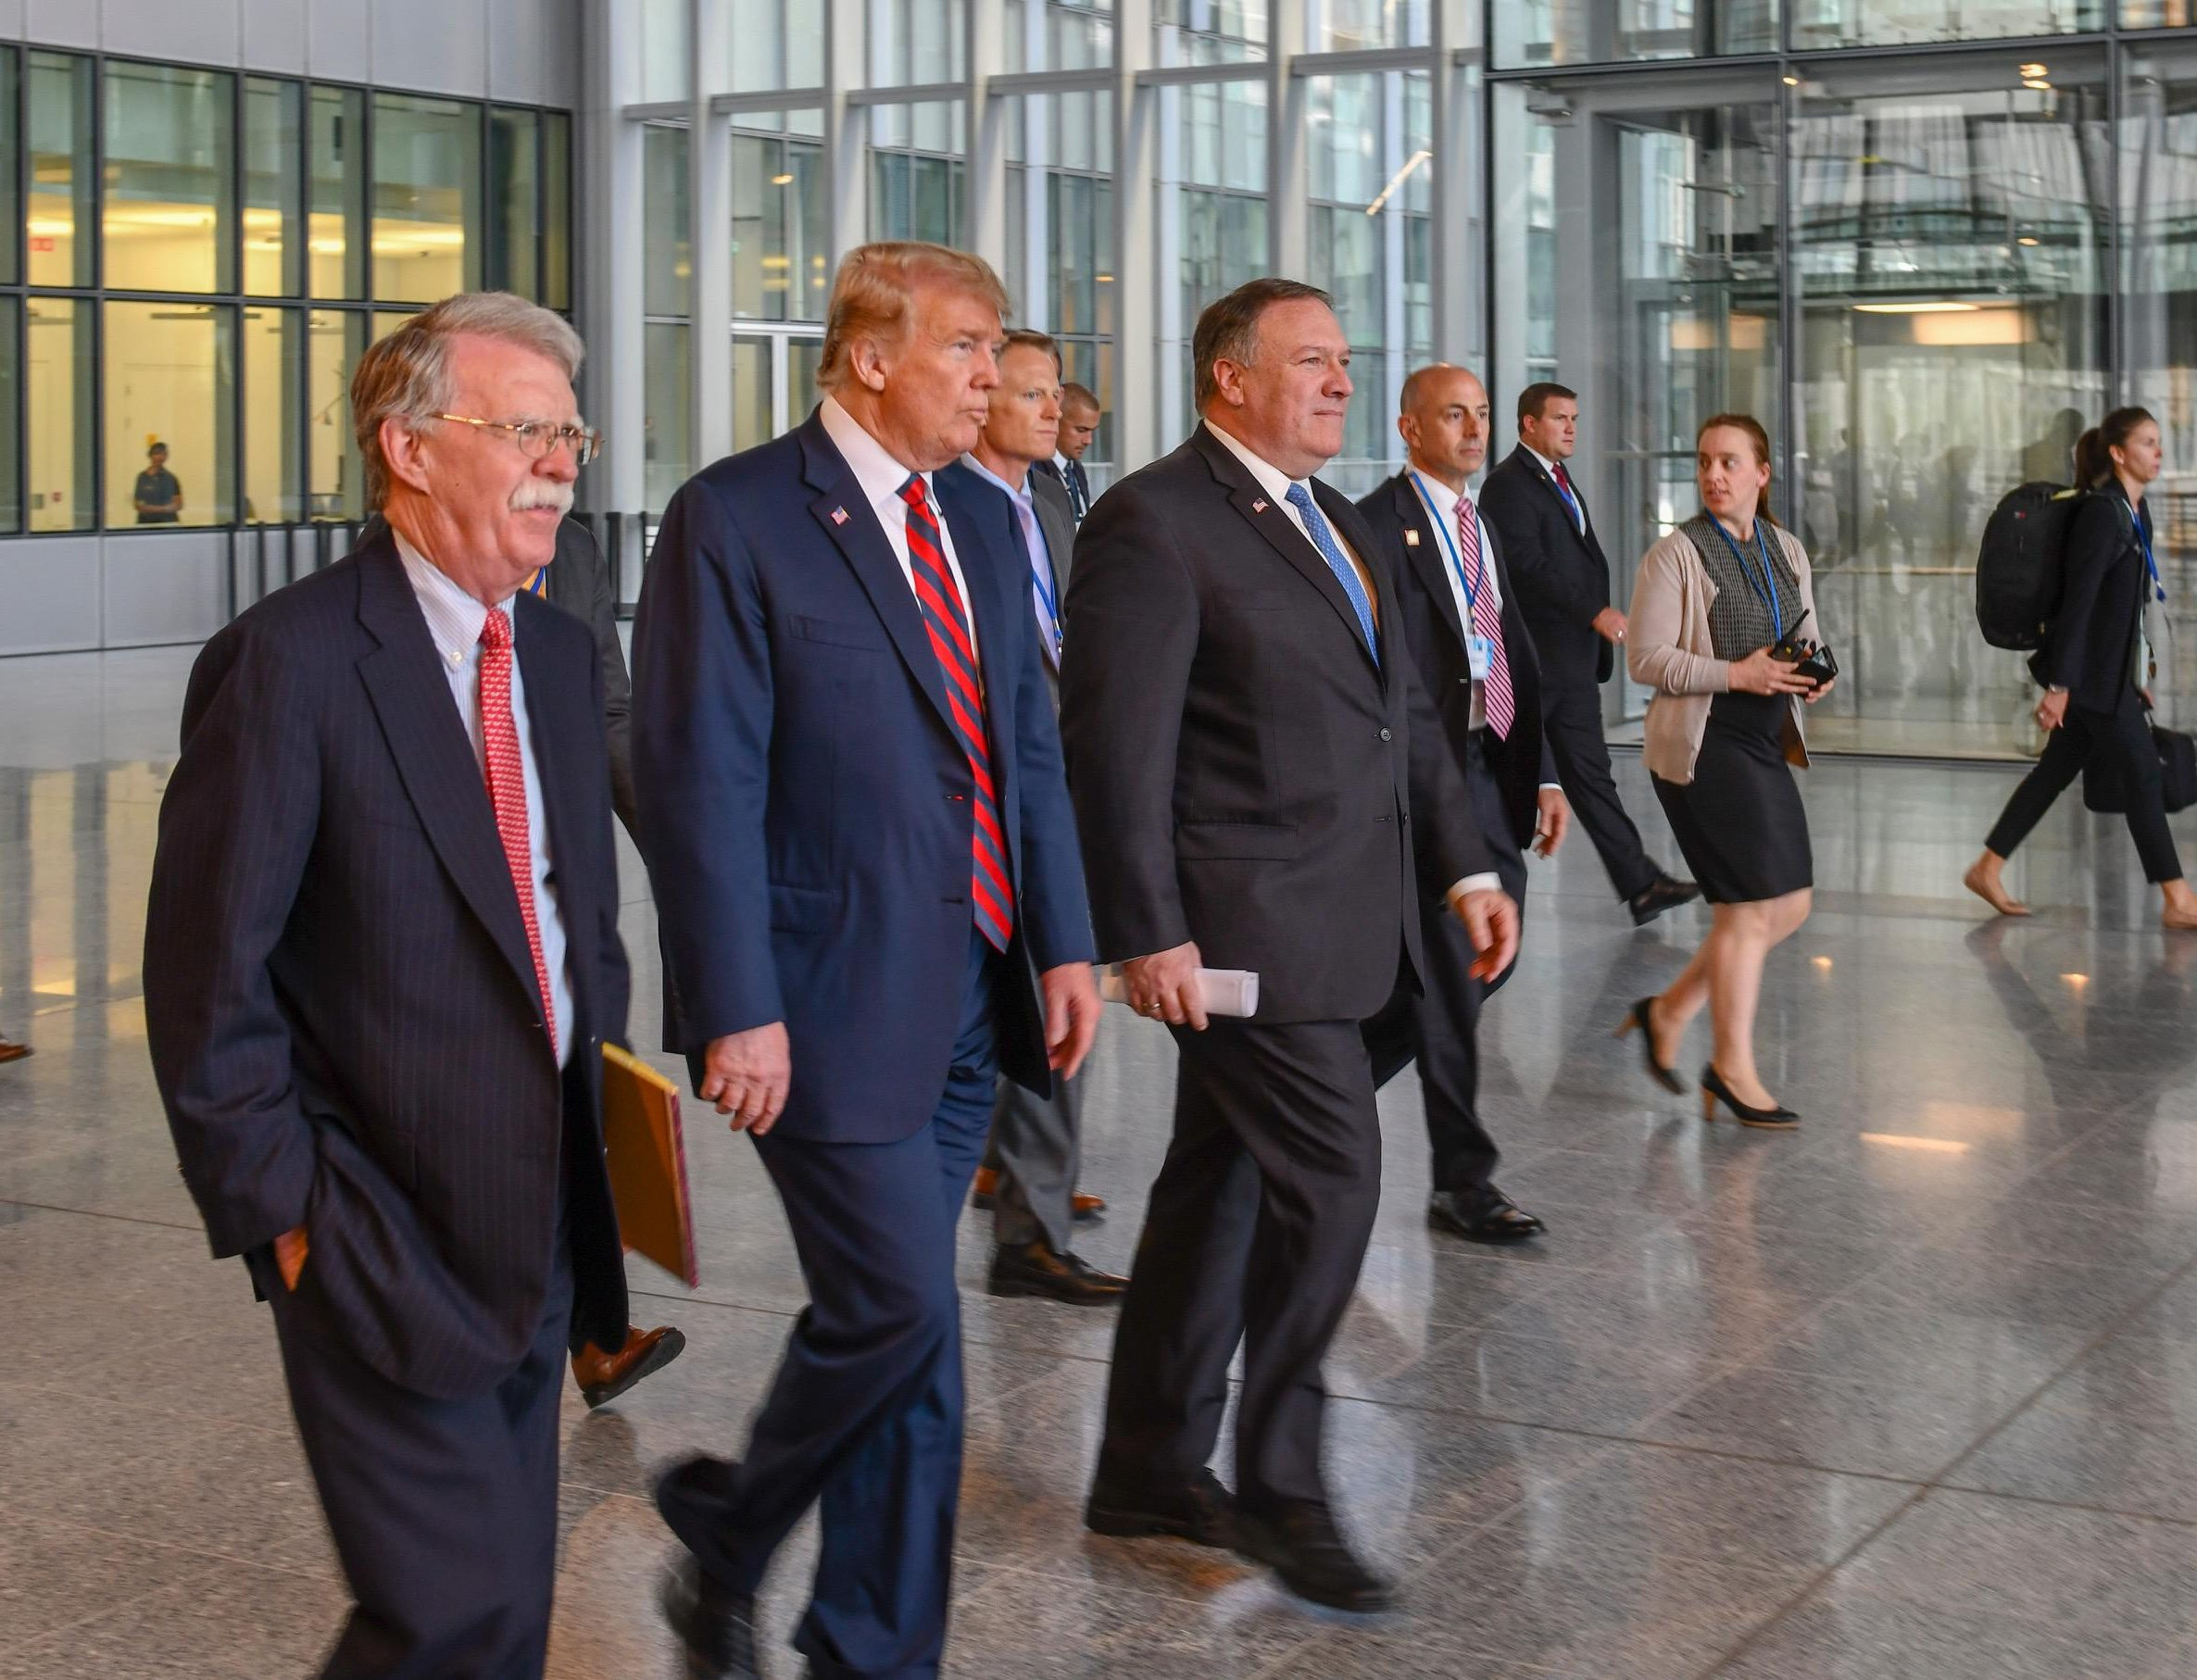 Left to right: Pompeo, Trump and Bolton. (Wikimedia Commons)